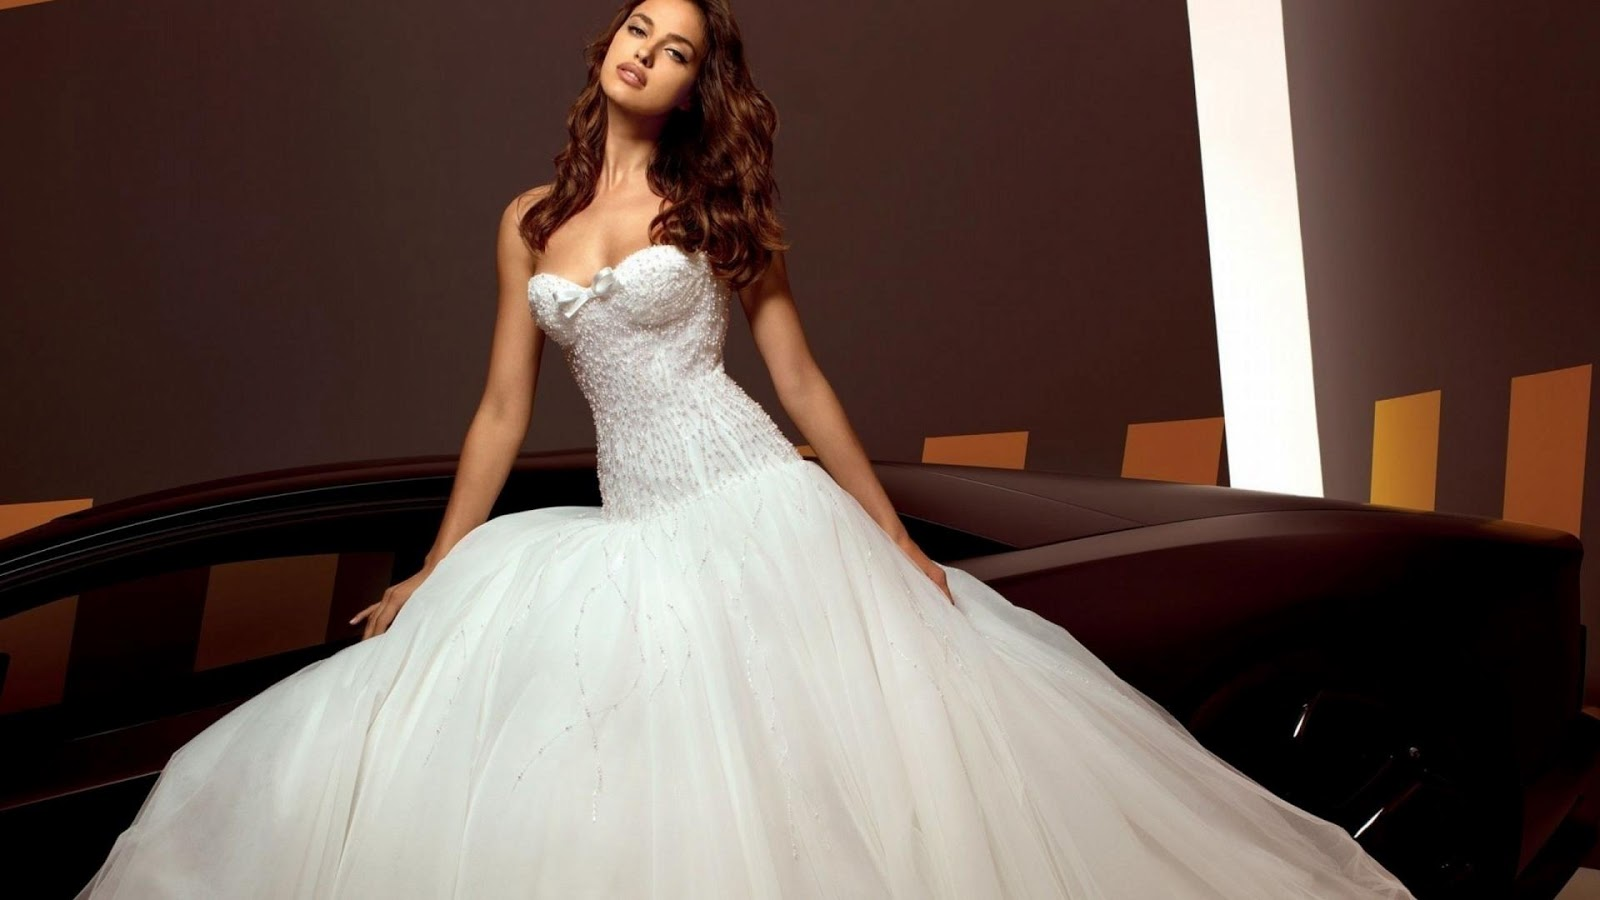 27 Awesome Simple Wedding Dresses For Cute Brides: Wallpapers: Irina-Shayk-2013-HD-Wallpaper